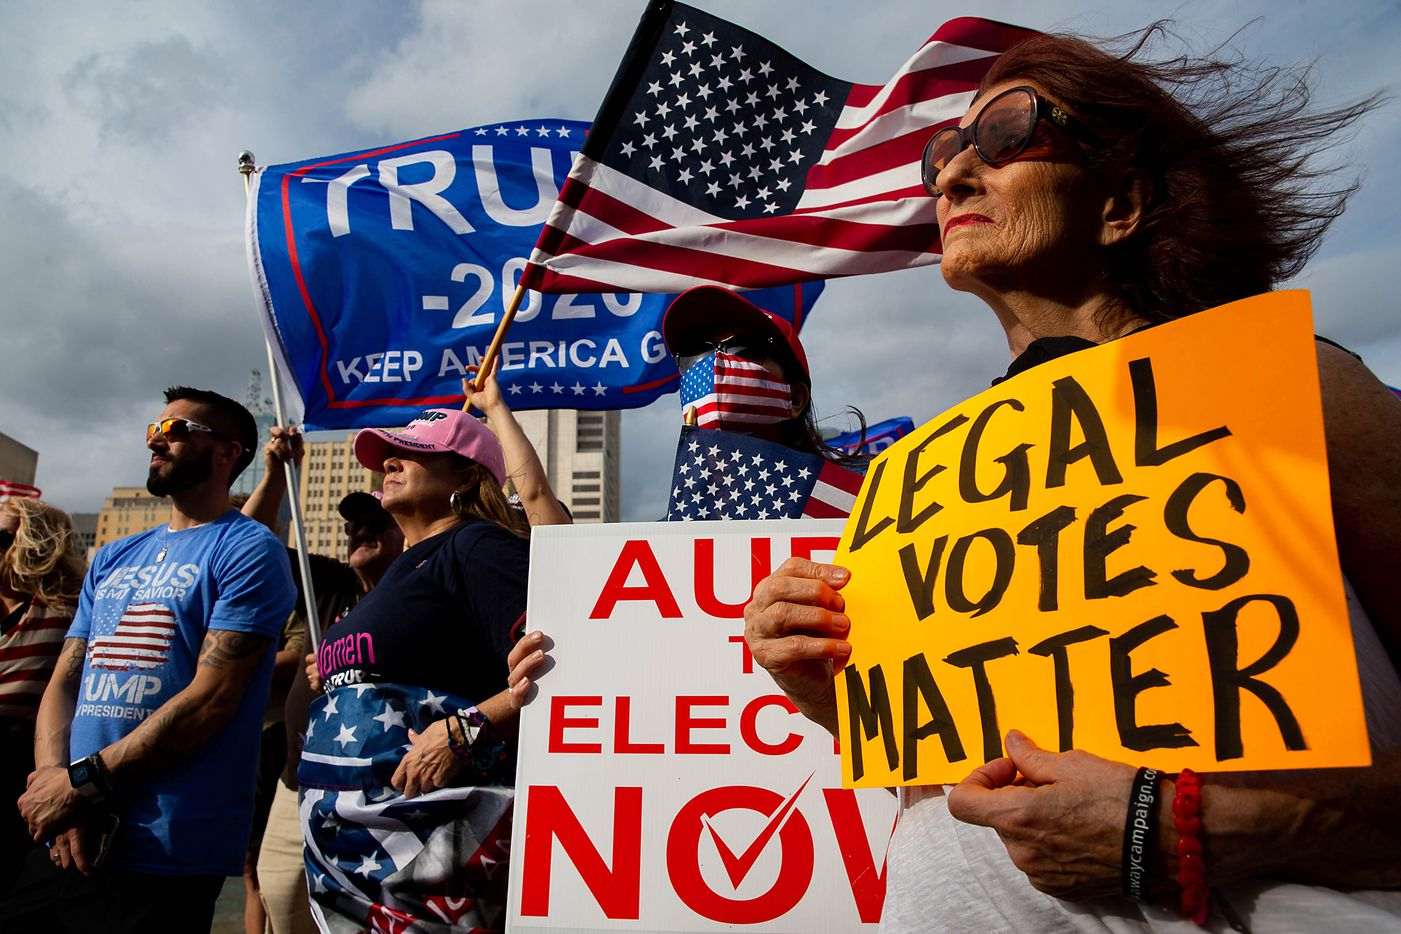 Susan Christenson of Plano holds a 'Legal Votes Matter' sign during a Don't Steal the Vote rally in support of President Donald Trump in front of Dallas City Hall on Saturday, Nov. 14, 2020.